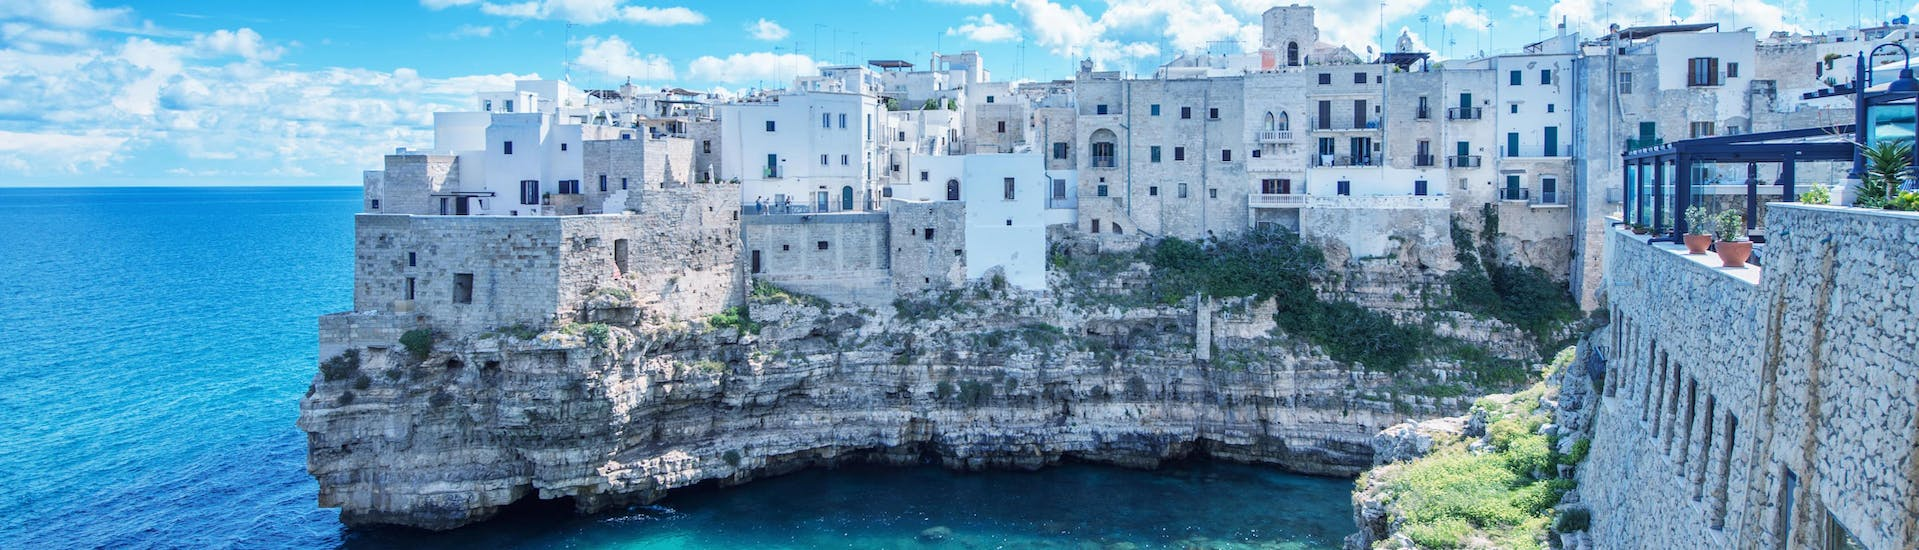 An image of the turquoise waters around Polignano a Mare that visitors get to witness on a boat trip in Puglia.